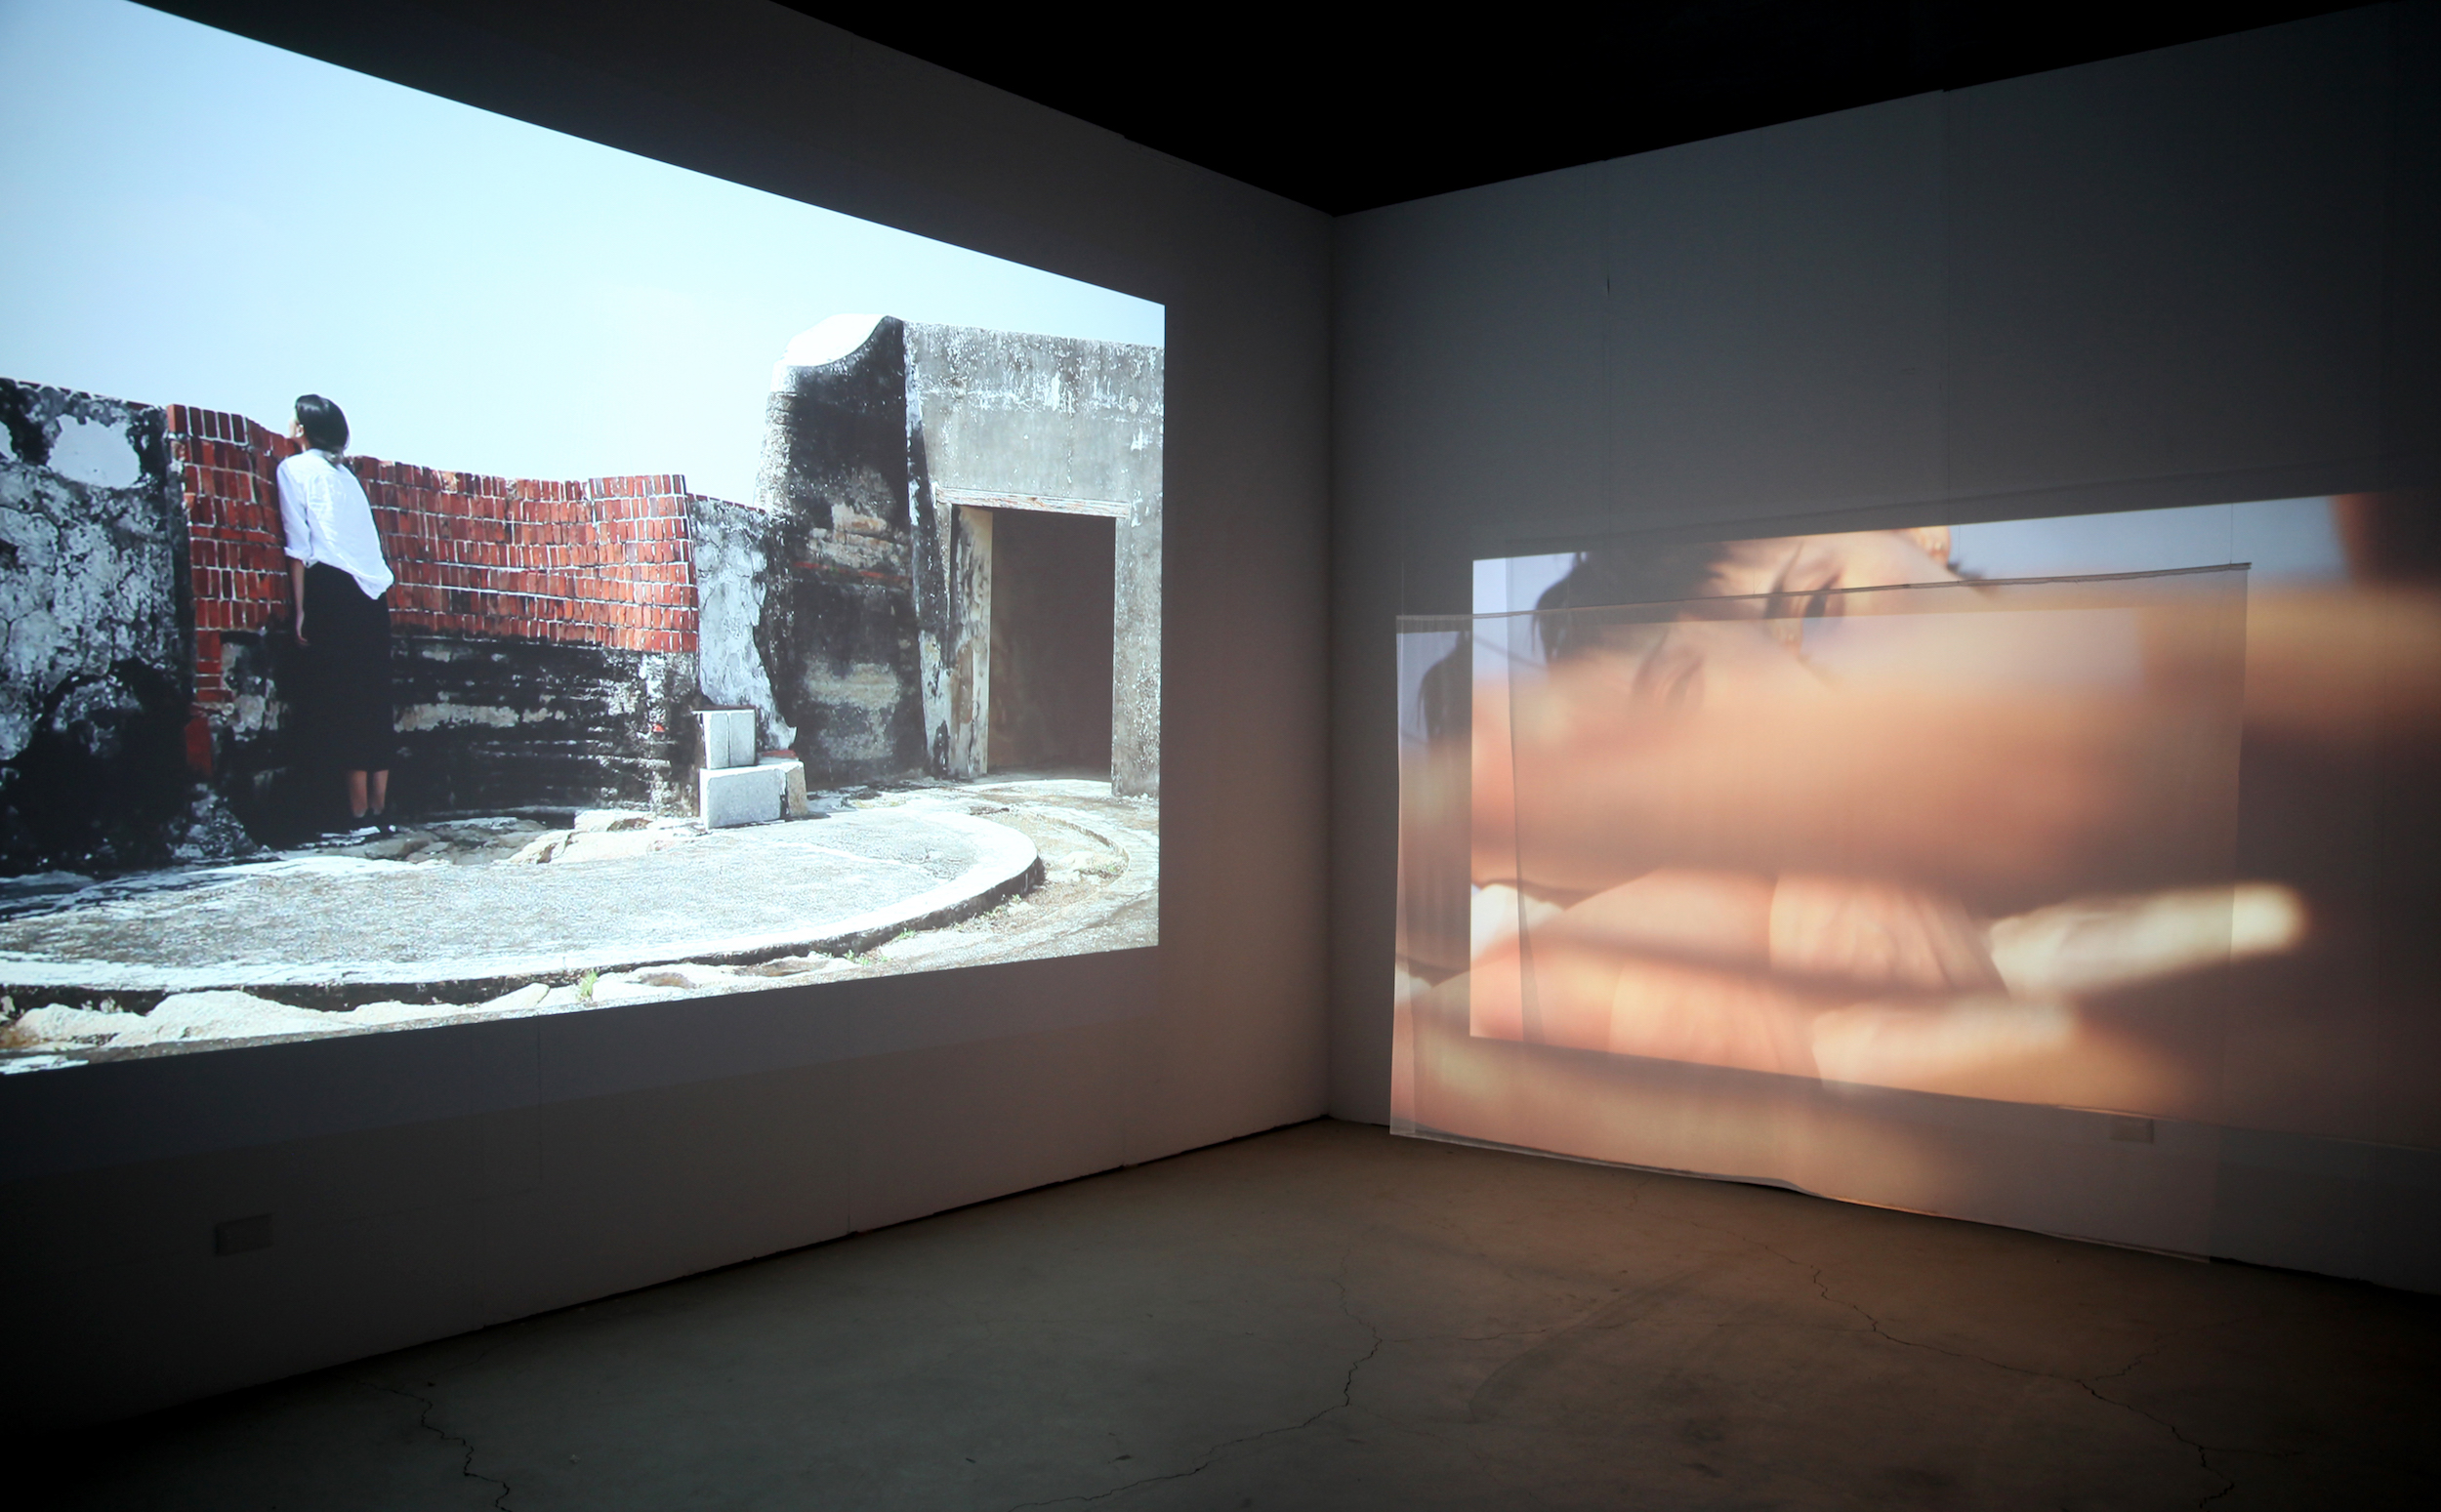 Anchor and A Loose Thread — 錨,和懸絲  2019 Two-channel video installation Dimensions variable  Dancers: Tso Han-Jie 左涵潔 and Mimi Chang 張心瑜 Sound Design: Supina Bytol and Conor O'Hanlon  Installation view at Young Art Space, Pier 2 Art Center   This project was created during an artist residency at Pier 2 Art Center, Kaohsiung, Taiwan  Supported by Pier 2 Art Center, Bureau of Cultural Affairs, Kaohsiung City Government and Ministry of Culture (Taiwan)     To remember is to have an anchor for your belonging.  Anchor and A Loose Thread  explores elements of memory, its condition within the body and its image when materialised. In collaboration with dancers Tso Han Jie and Mimi Chang, Nikki Lam's two-channel video examines the contradictory and entangled relationships between memories, the body and their records, both from within and through image documentation.   Anchor and A Loose Thread  continues the artist's research into post-colonial hybridity through personal and collective memories. The work describes an exchange of memories between artist Nikki Lam and dancers Tso Han Jie and Mimi Chang. Lam drew on her personal histories of a multi-faceted identity (Hong Kong / Australian), and her ongoing investigations into the concept of belonging and remembering. Using elements such as object, site and poetry as provocations, Tso and Chang were invited to respond with movements from the past, reimagined, as well as gestures developed then and there, improvised.  Through rigorous translations at every part of the process—from English to Cantonese to Chinese, Lam is particularly interested in the untranslatable details. Repeatedly framing and re-framing Tso and Chang's movements, either through shooting or editing, fragments of their memories are constantly re-considered. Between the artists, this process of materialising memory become a group exercise of recordings and translations. Of these records, historical sites such as Cijin Fort and Zongye stood quietly in reference t